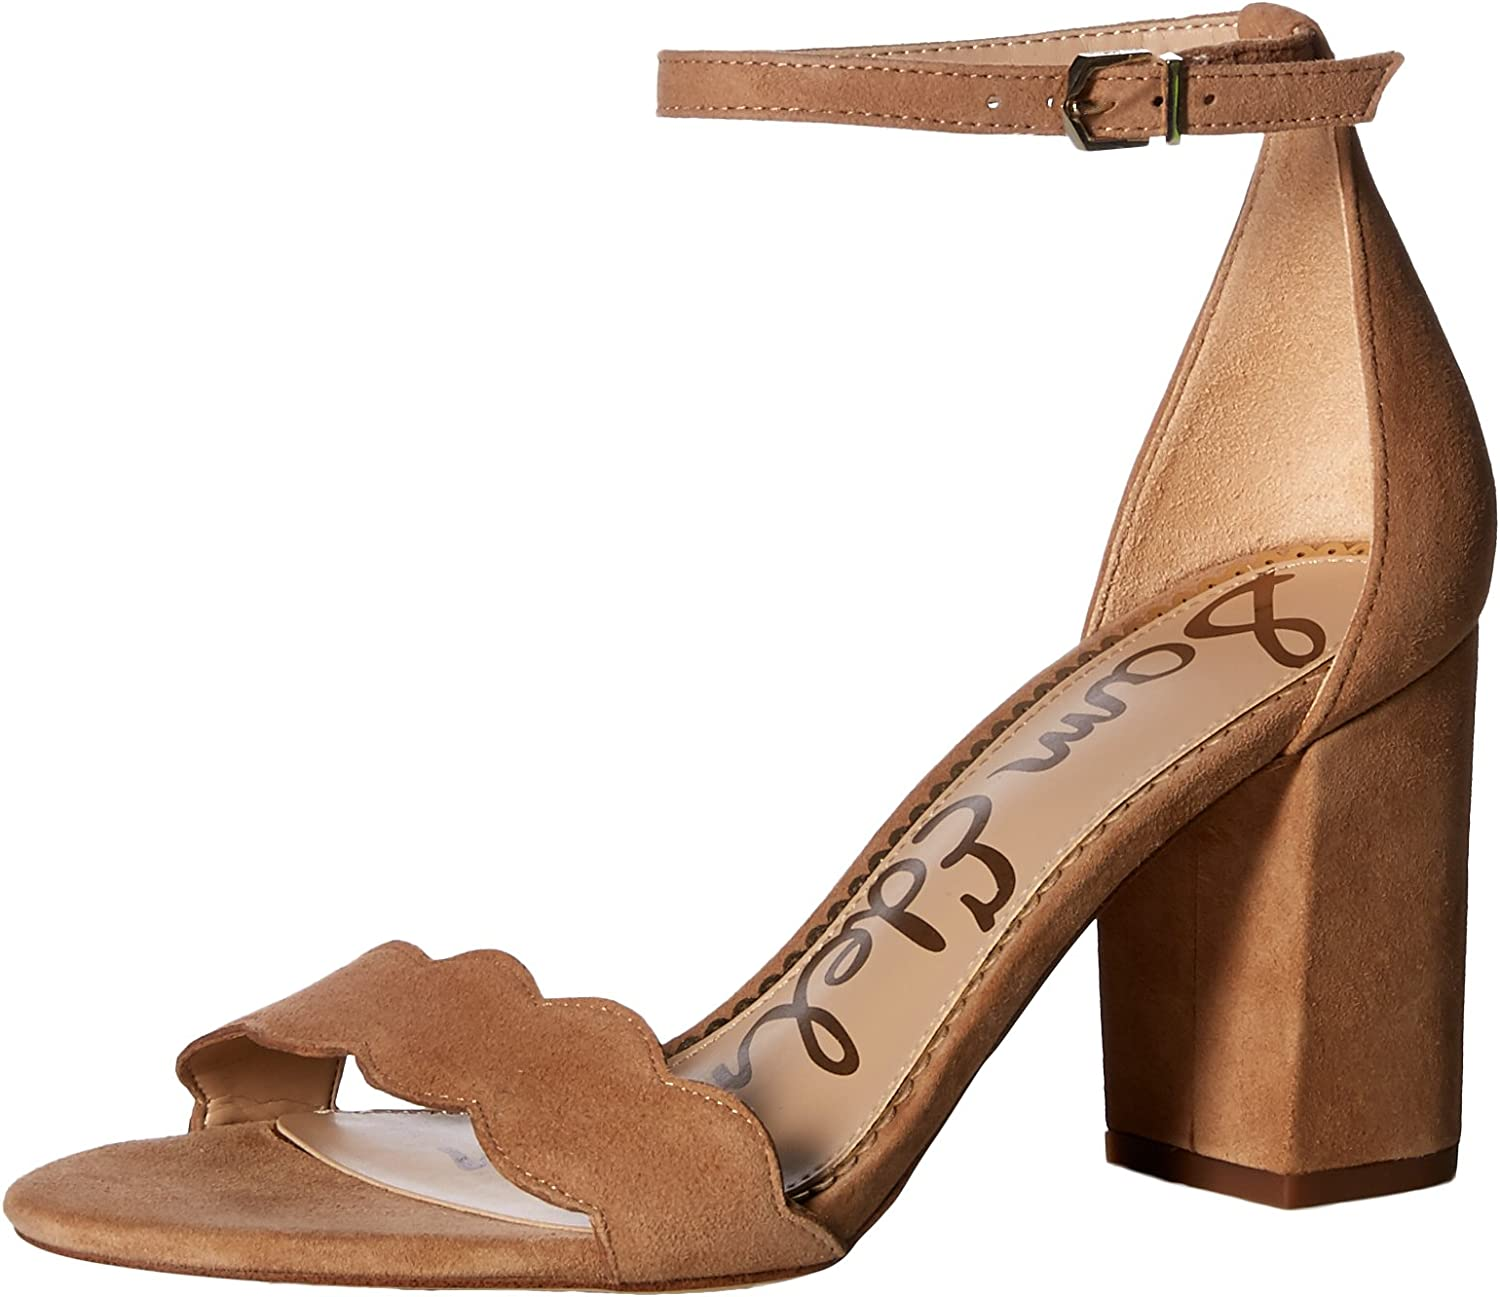 Sam Edelman Womens Odila Fashion Sandals